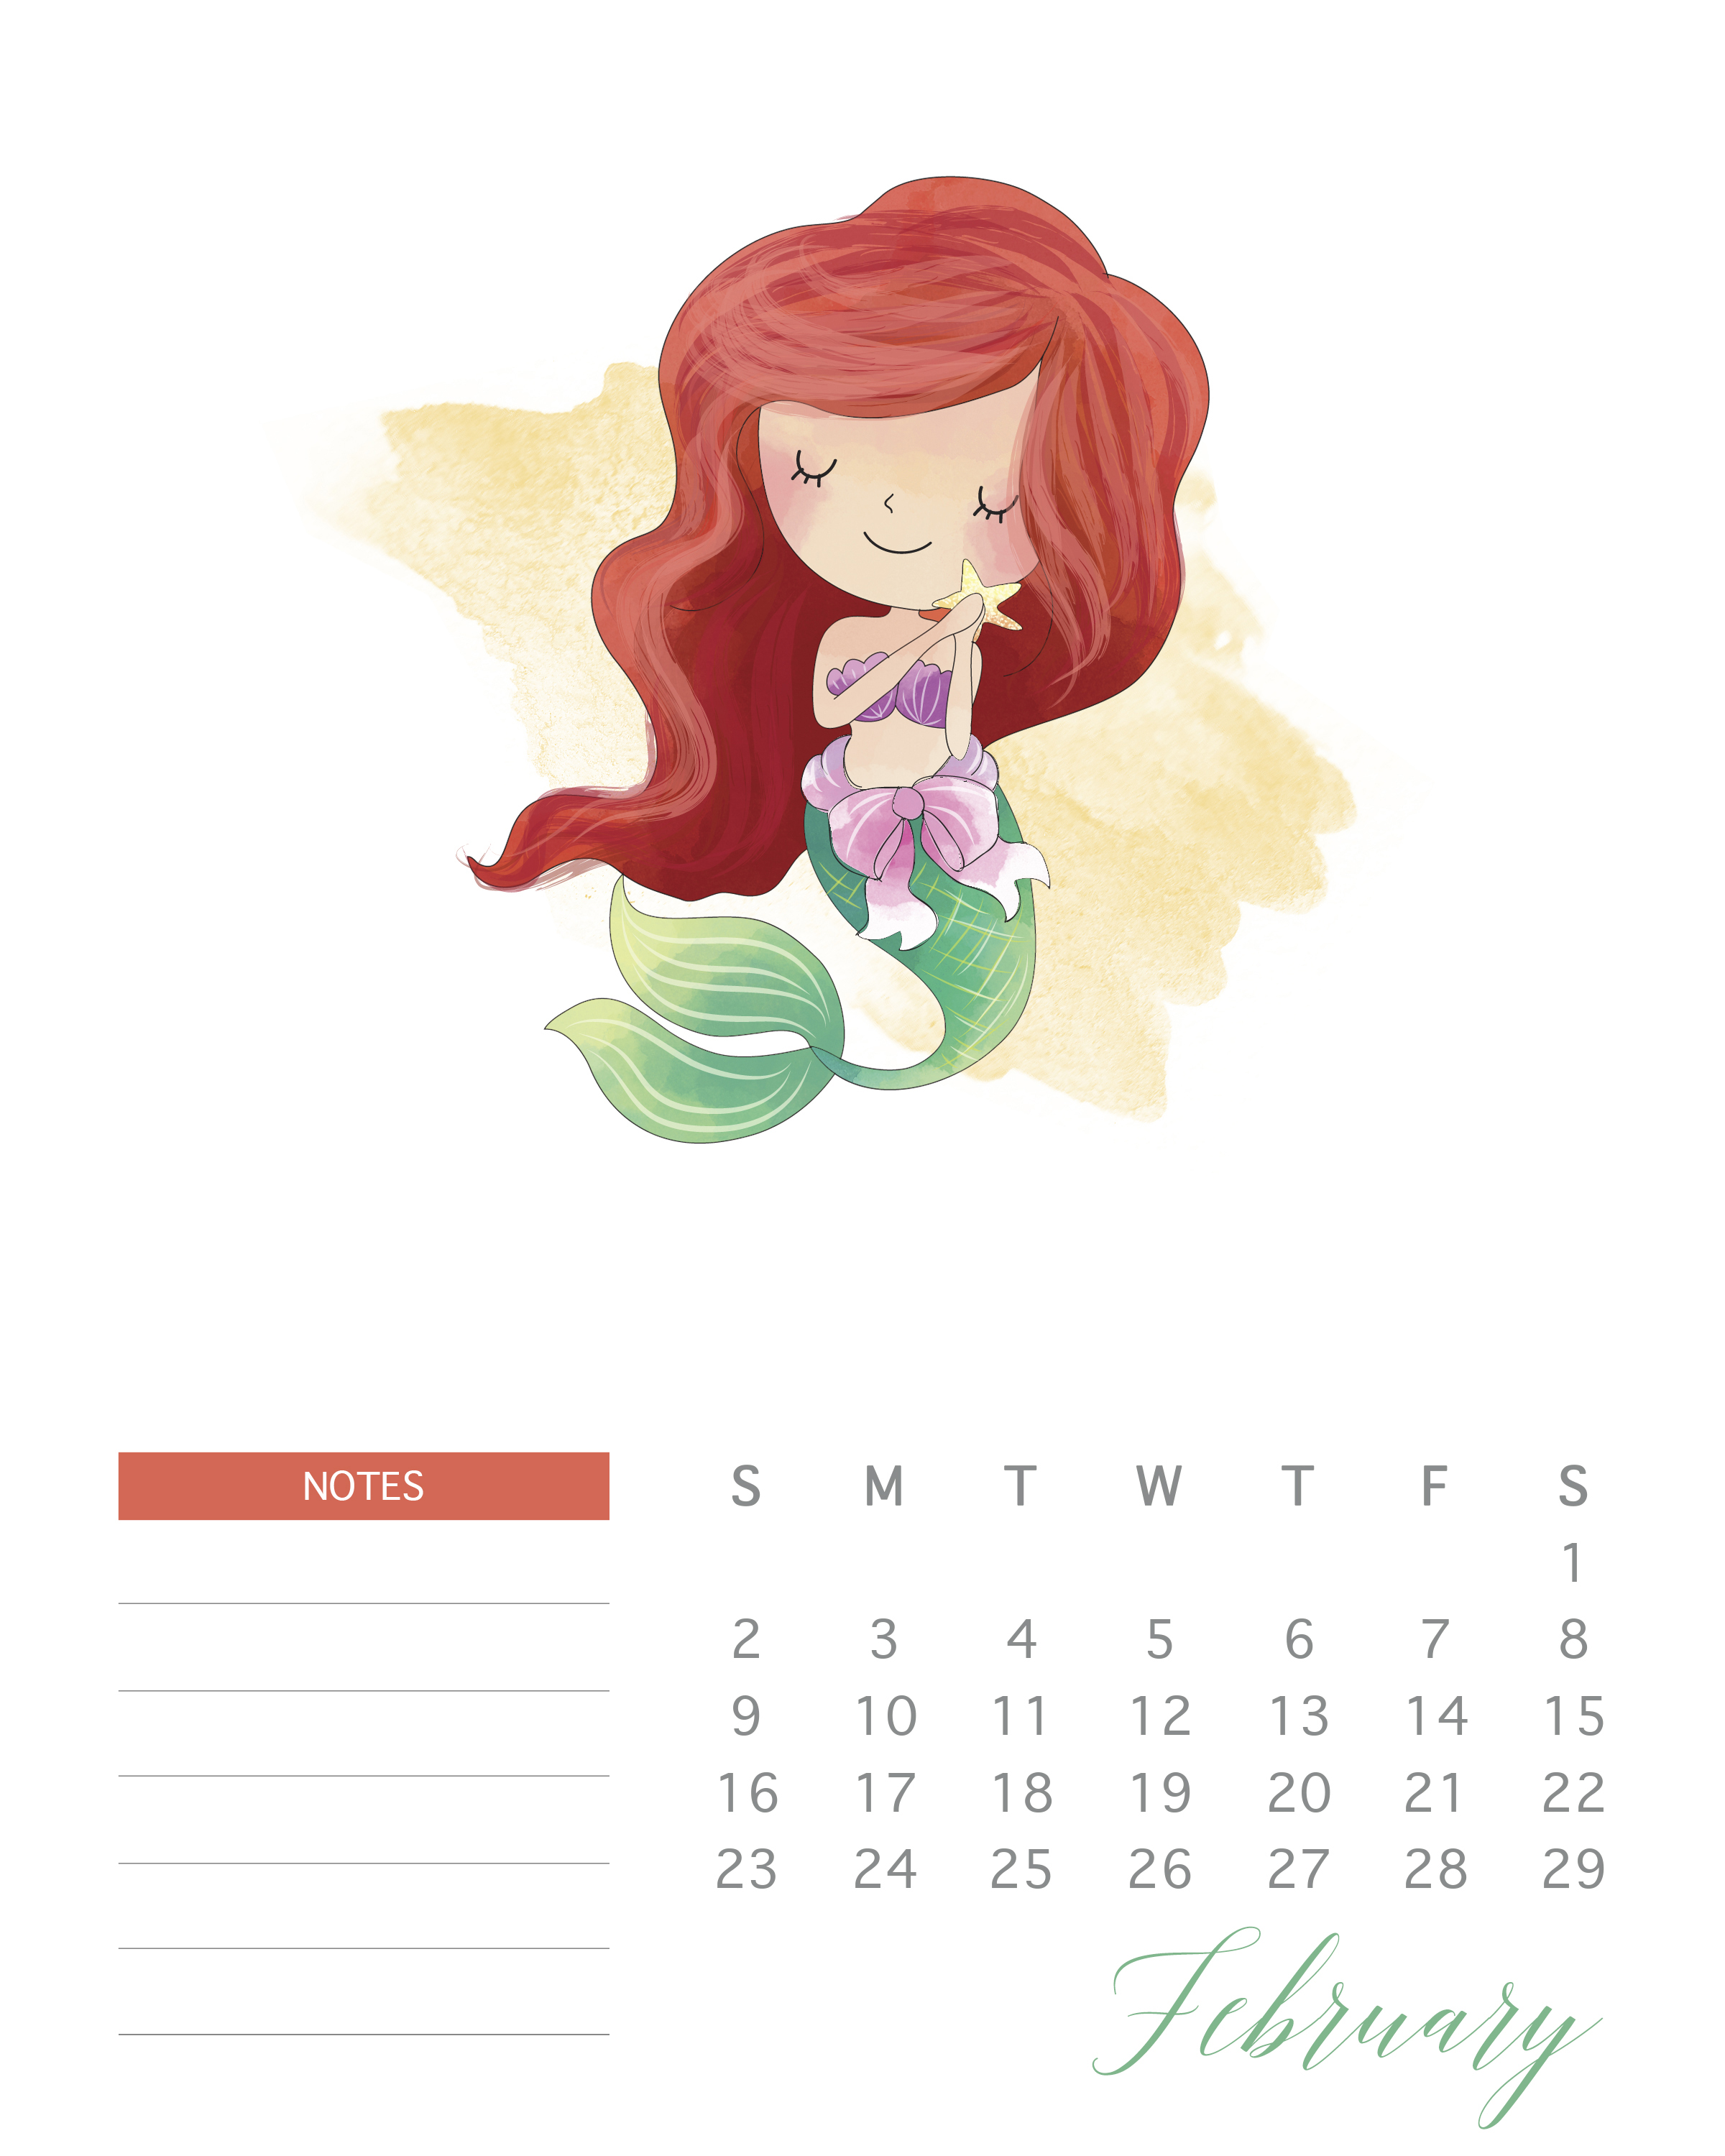 This Free Printable 2020 Watercolor Princess Calendar will bring you a full year of happiness and joy all while keeping you super organized and on time!